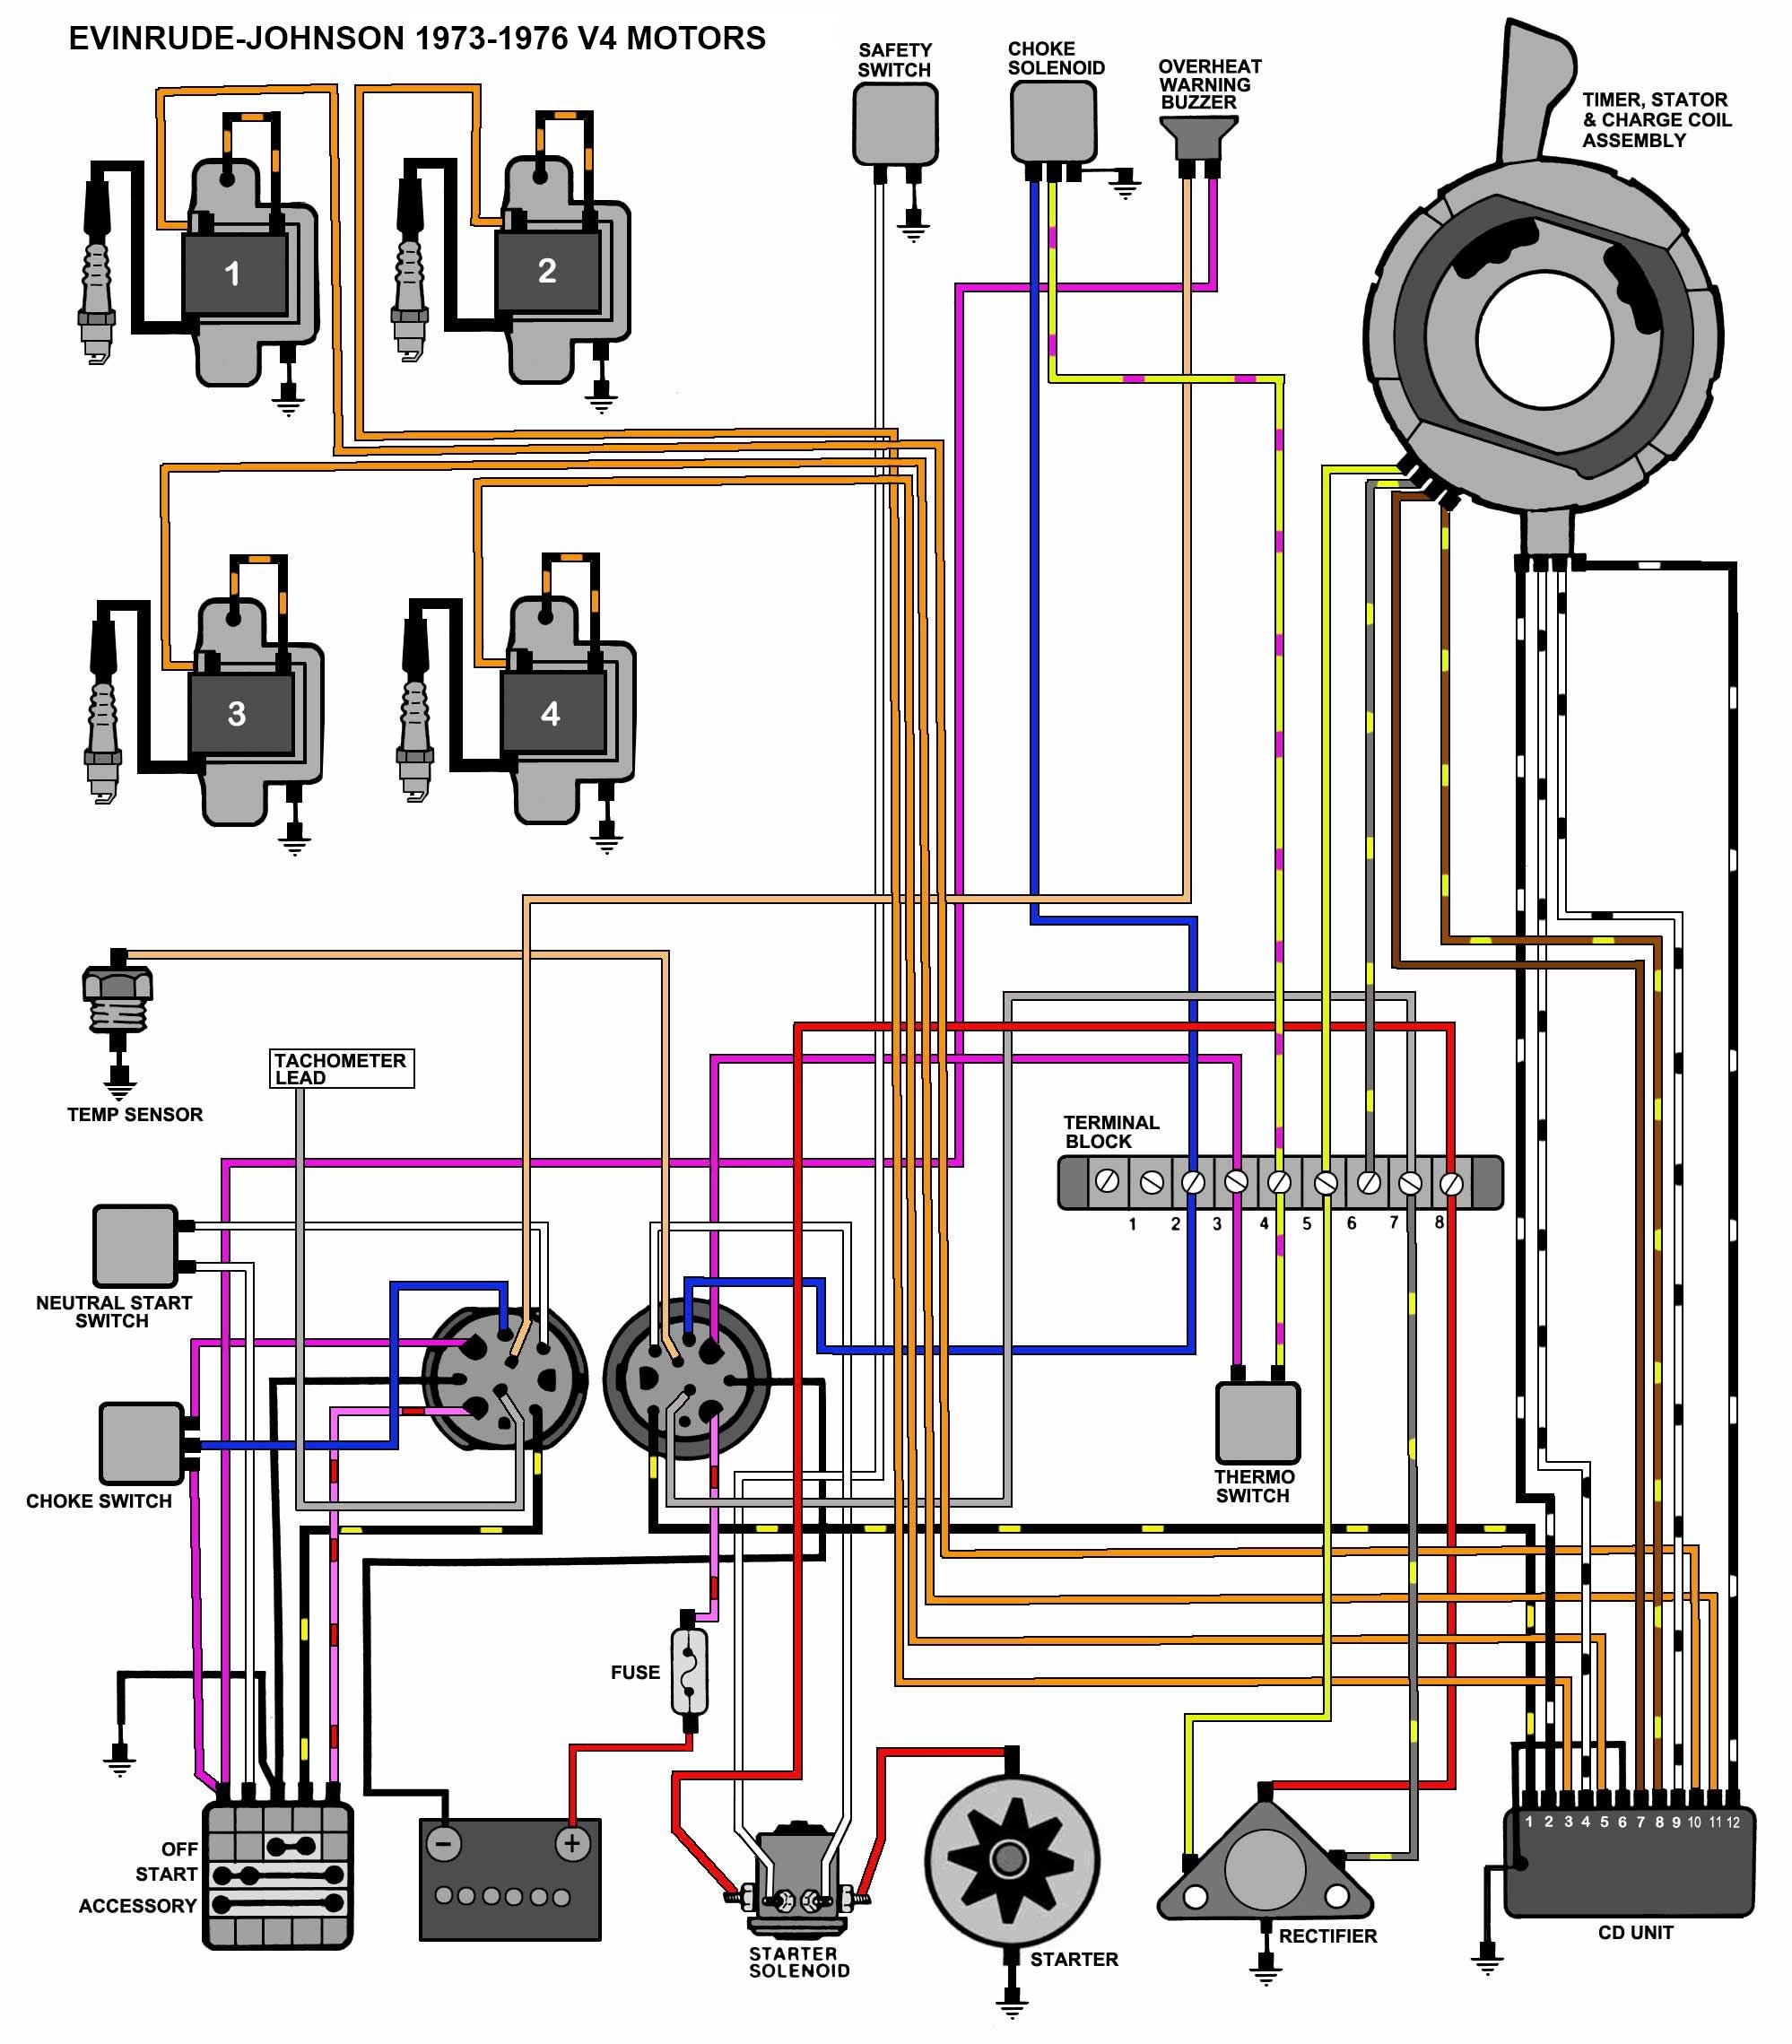 Evinrude Ignition Switch Wiring Diagram With 1969 Omc 55 Wiring throughout 70 Hp Evinrude Wiring Diagram